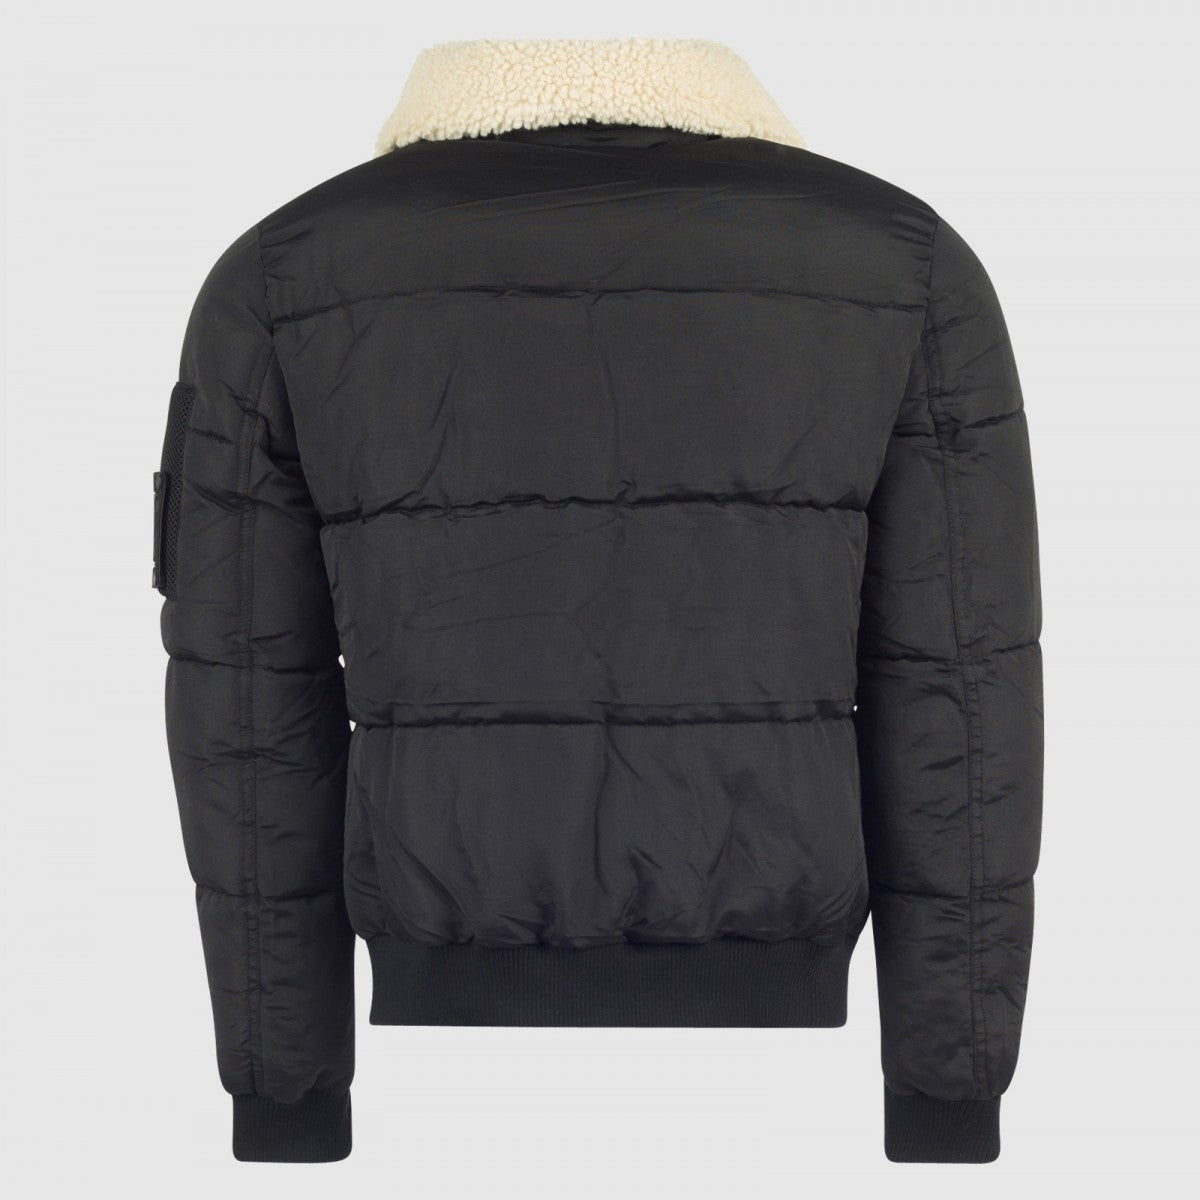 Men's Jacket | Black